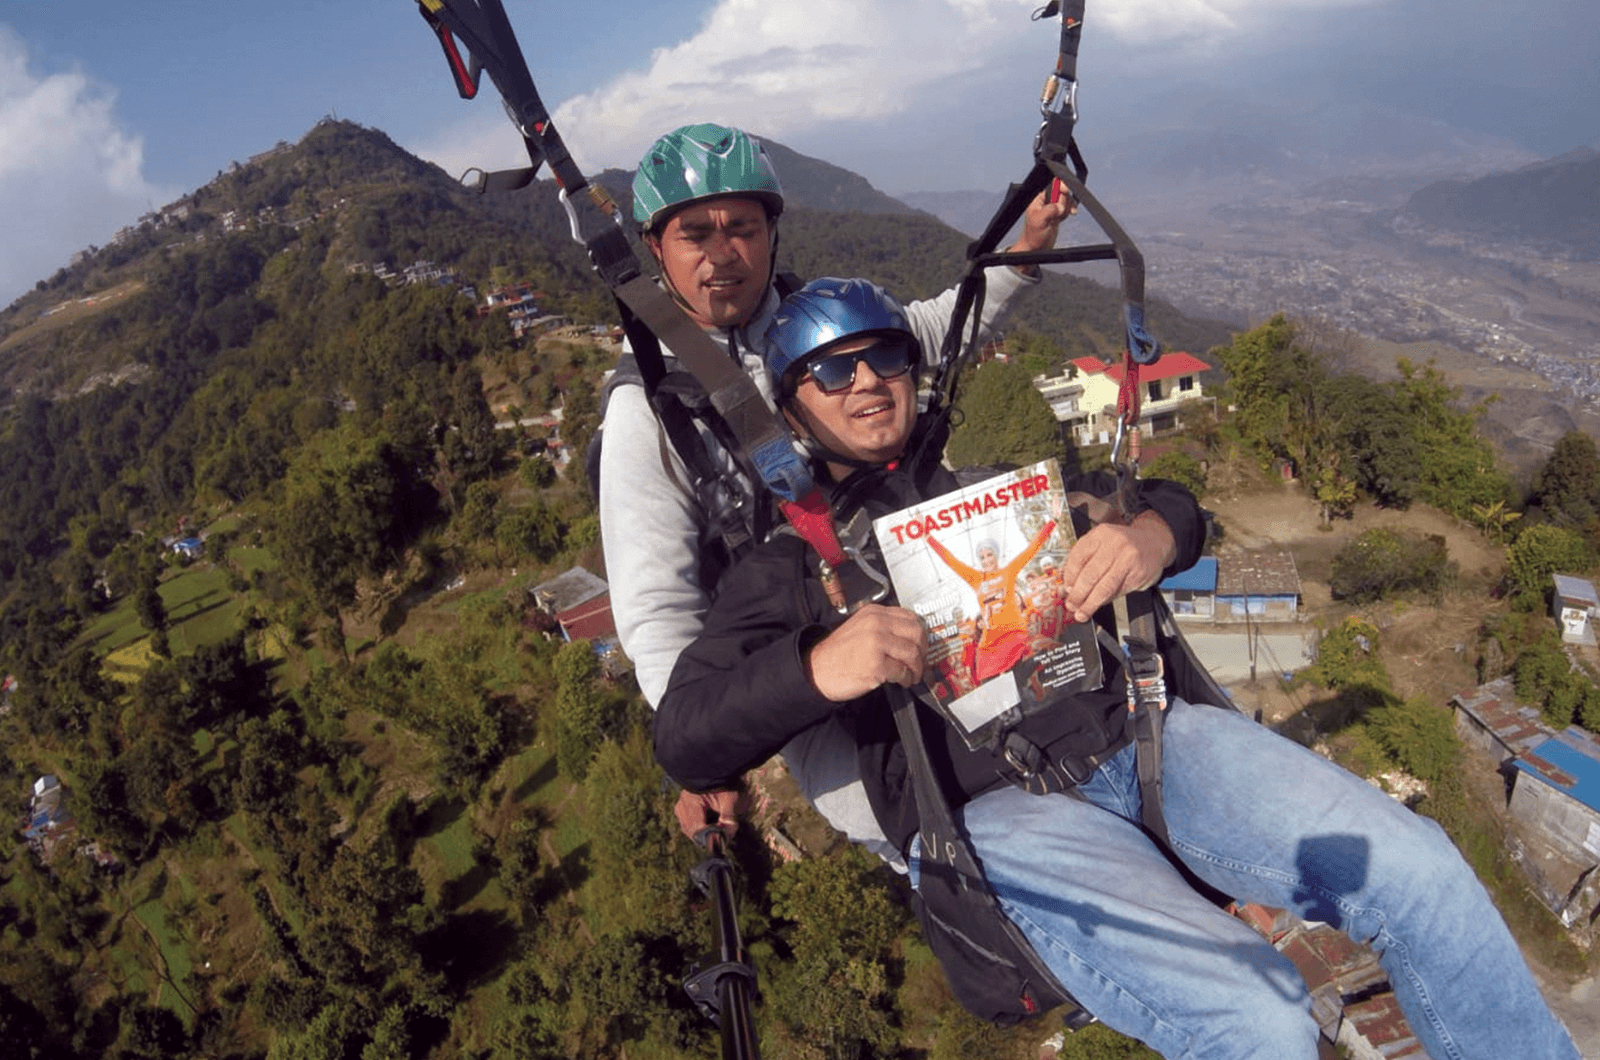 Ajay Kumar Mohapatra of Pune, Maharashtra, India, paraglides with his magazine and an instructor in Pokhara, Nepal.